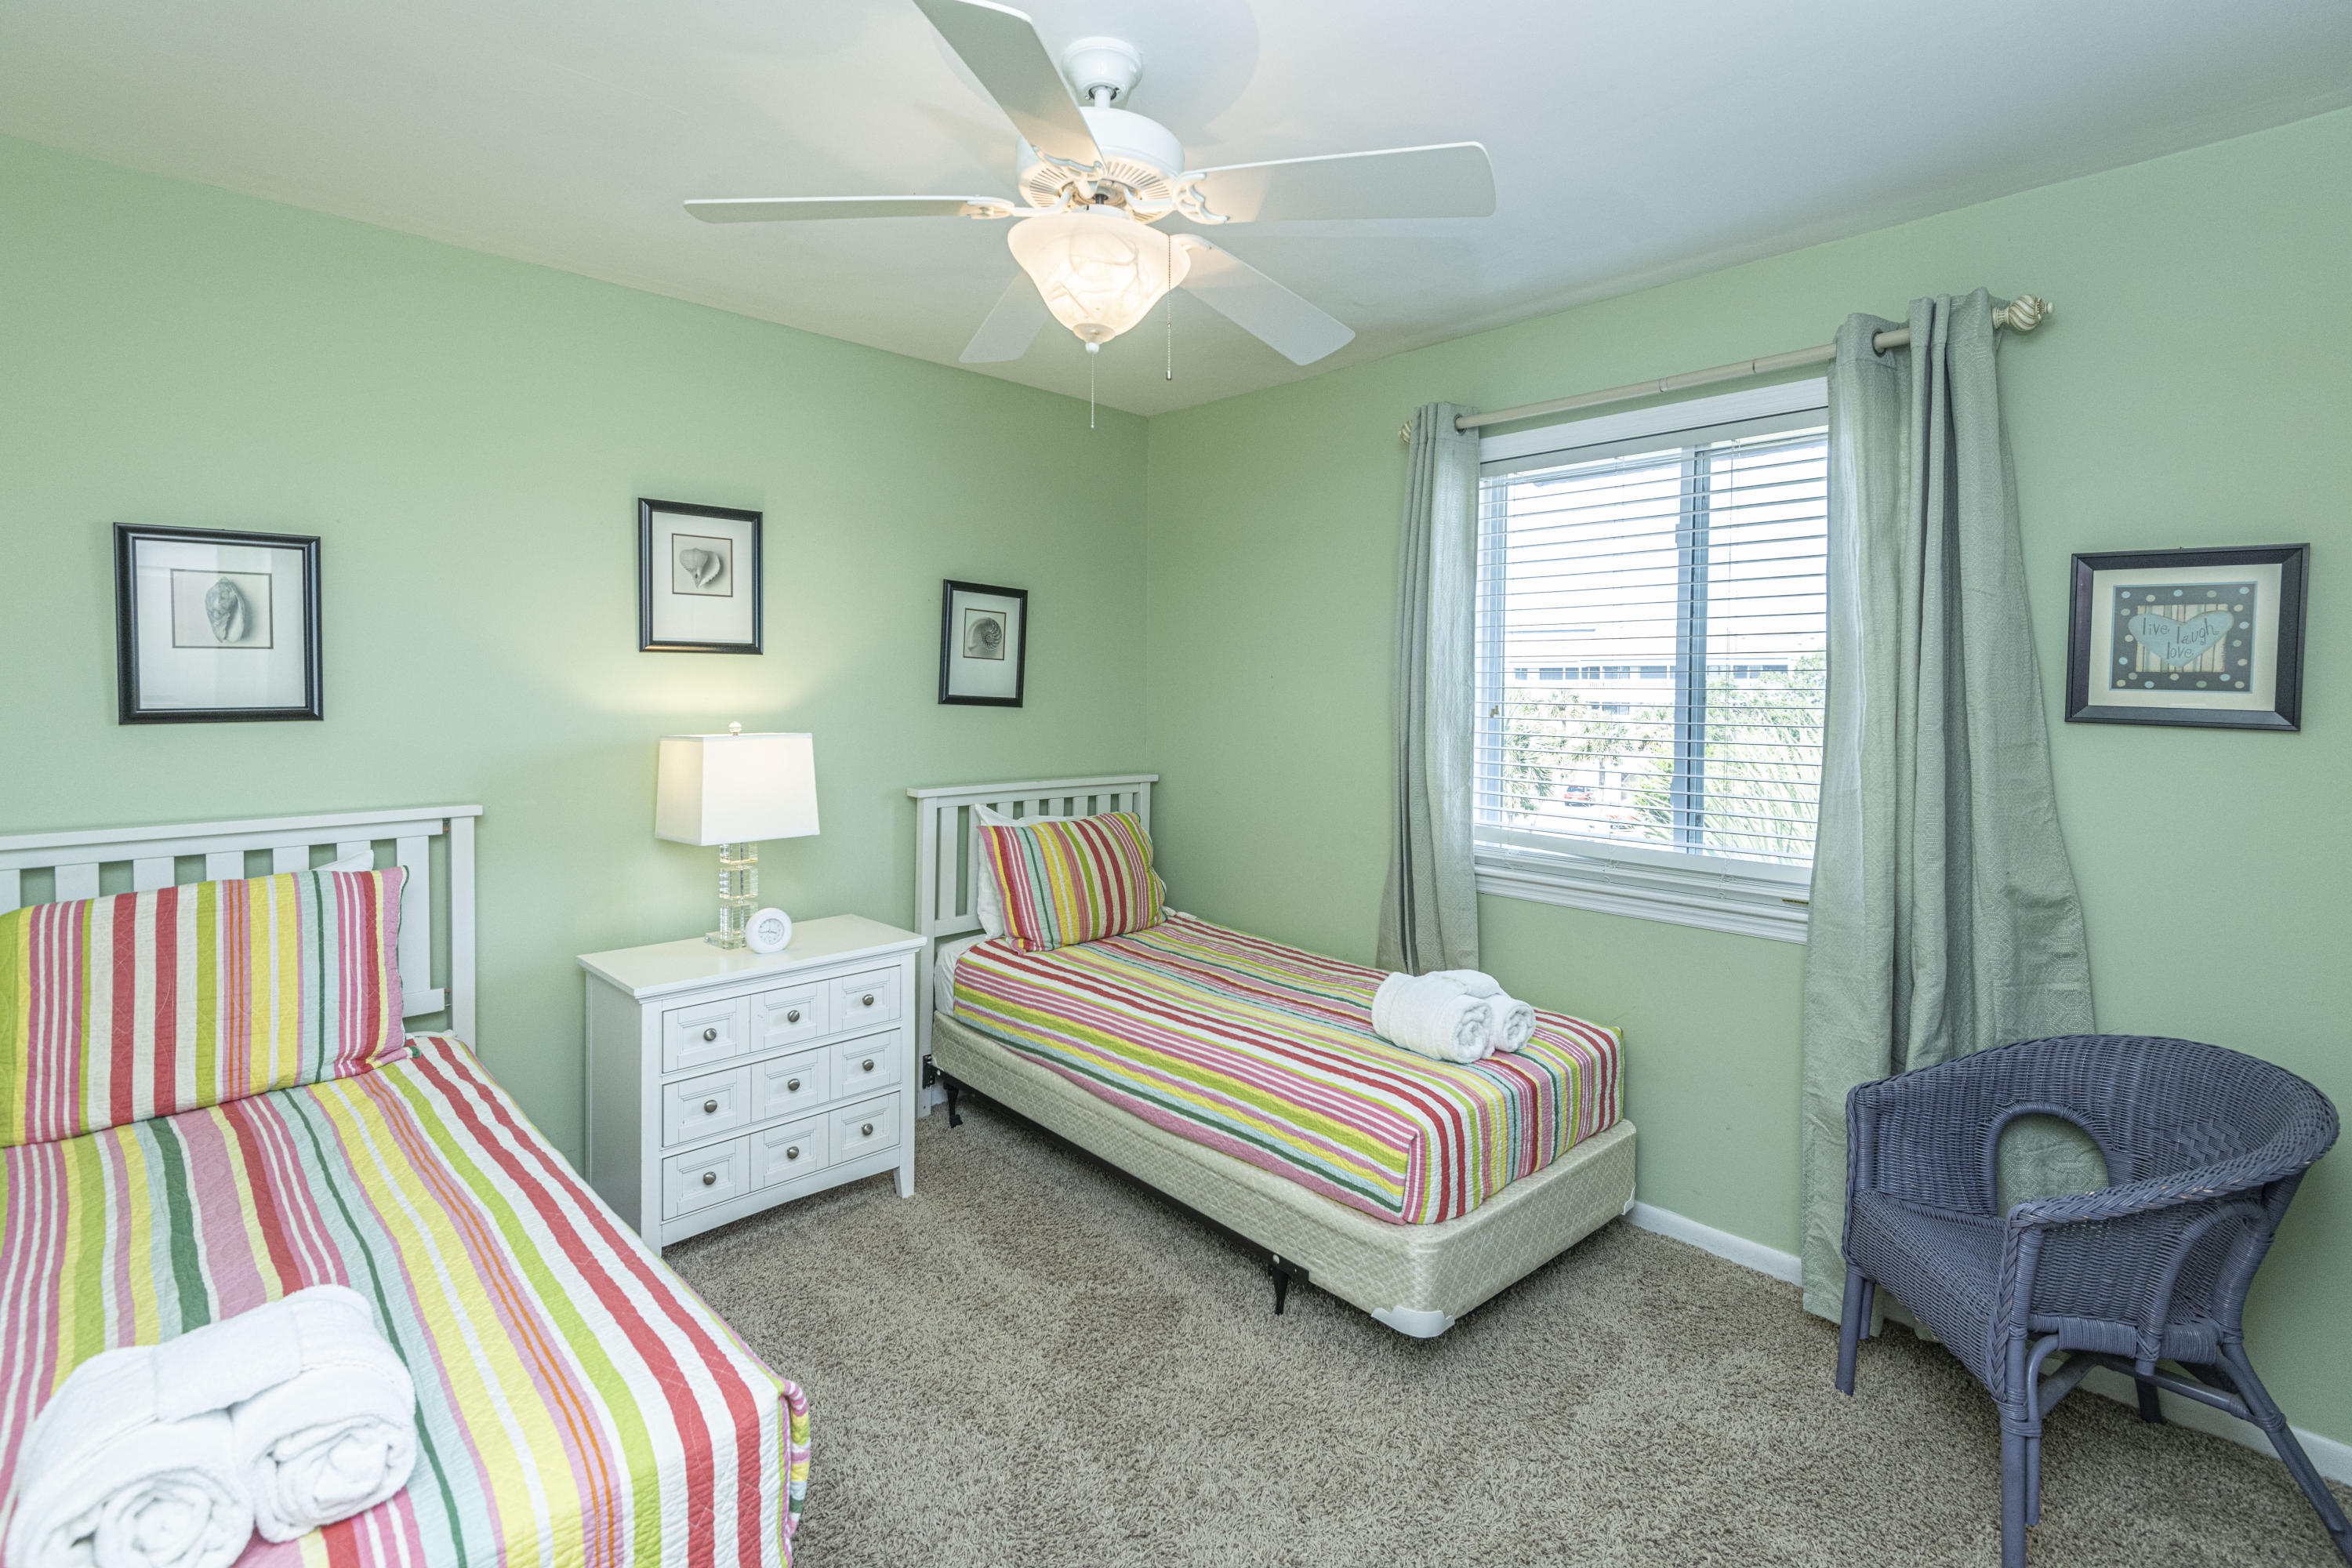 Mariners Cay Homes For Sale - 60 Mariners Cay, Folly Beach, SC - 16